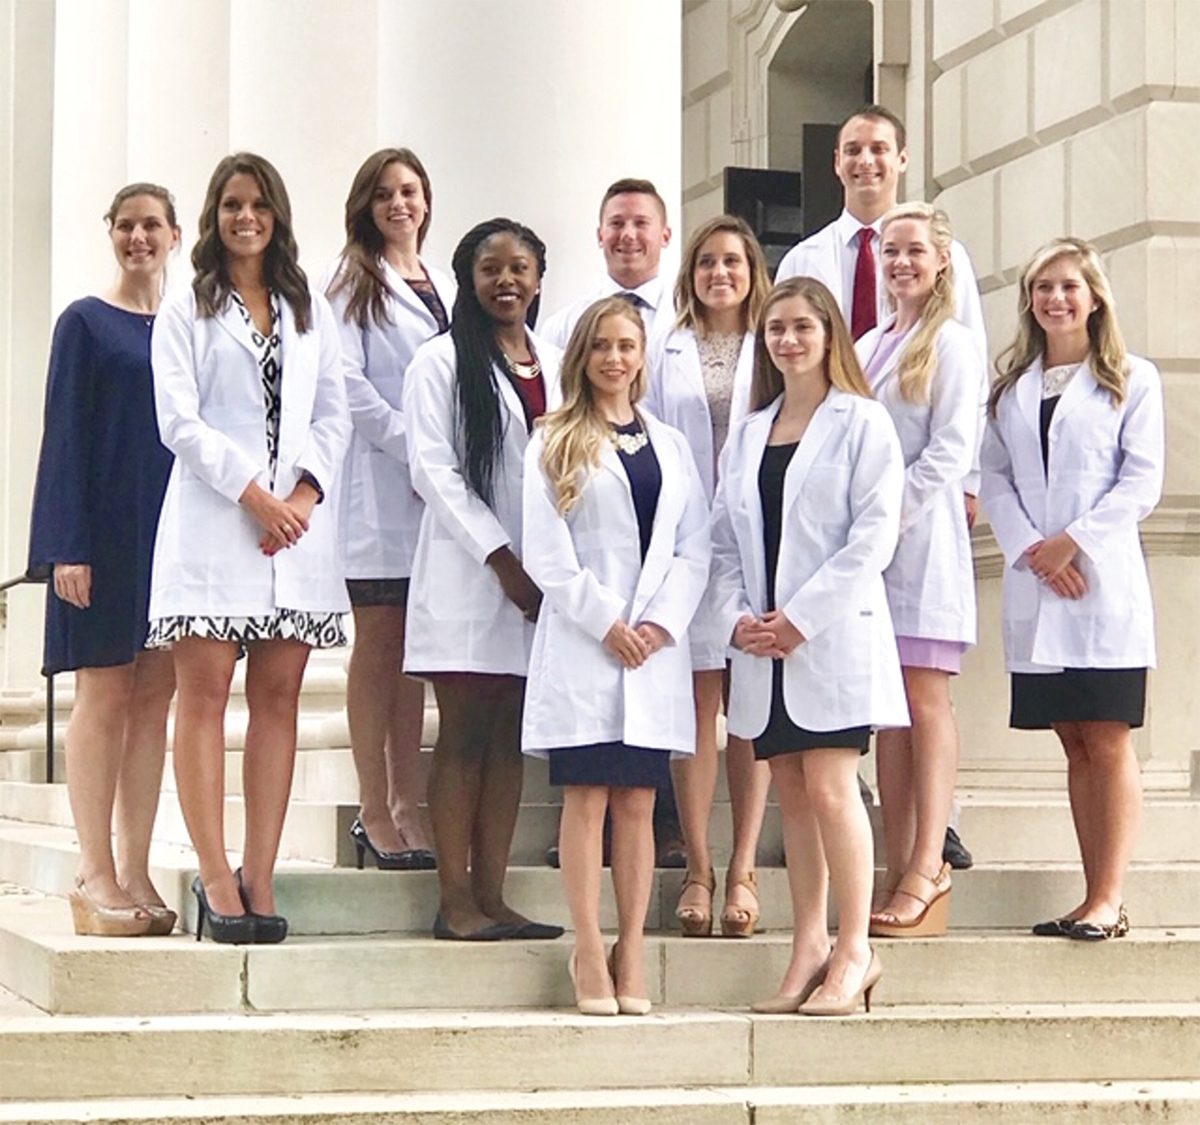 11 Nurse Anesthesia program students stand on the steps before a white marble building and columns. All but one are wearing white lab coats.